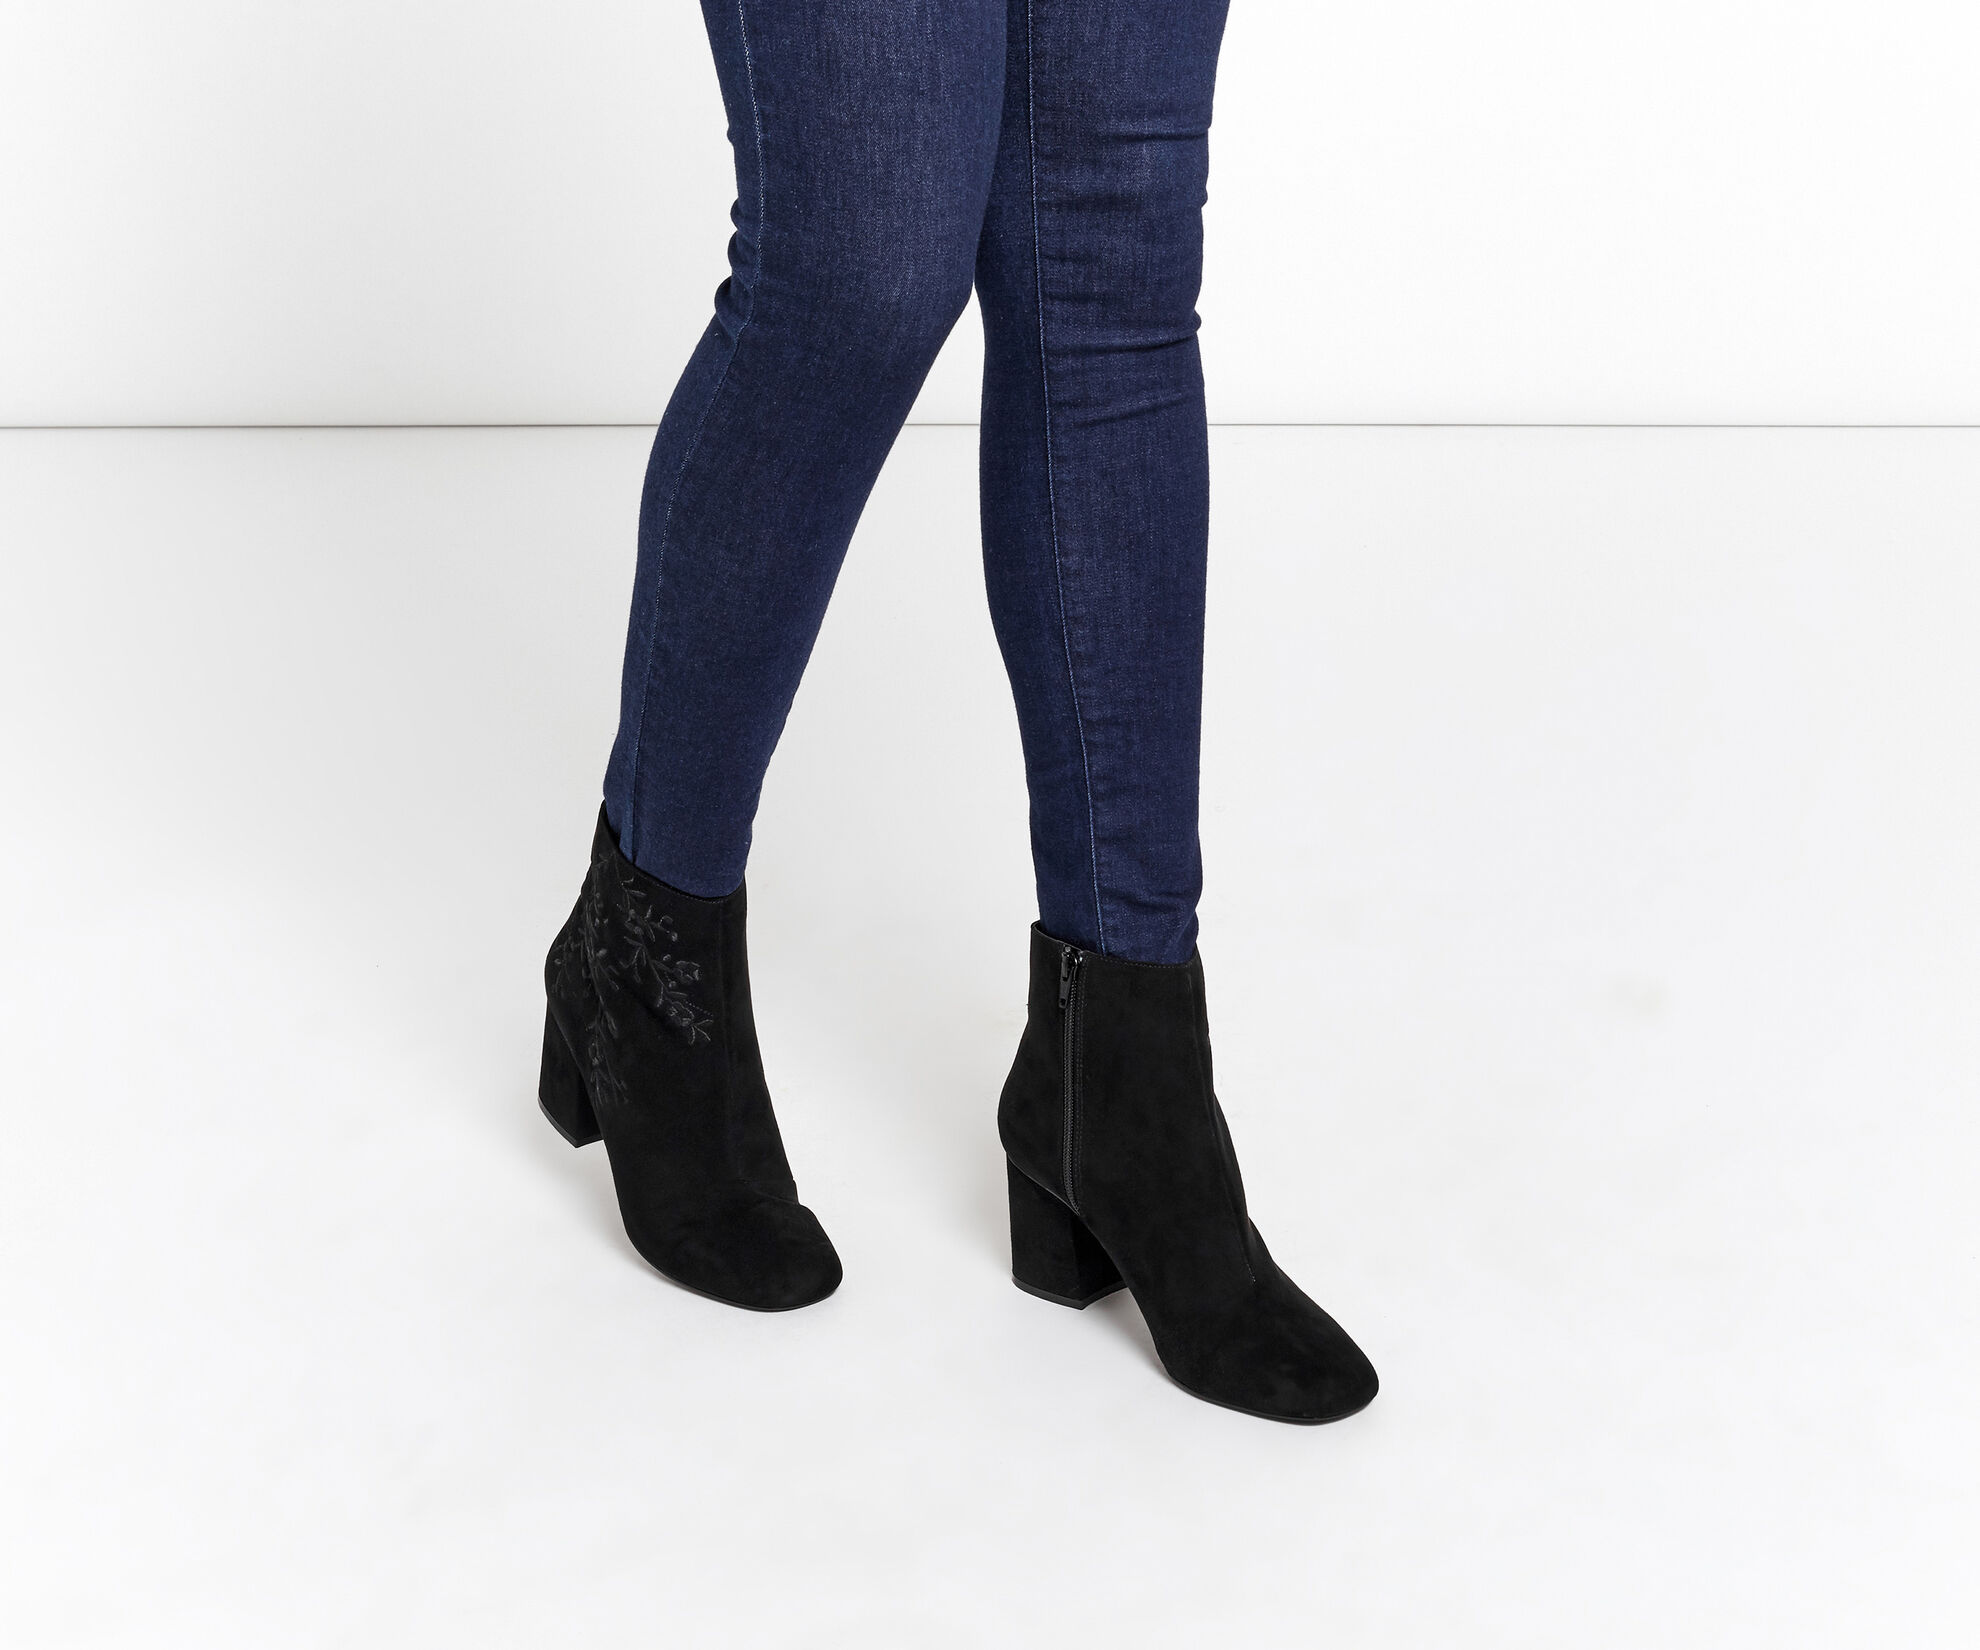 Oasis, EMBROIDERED ANKLE BOOT Black 1